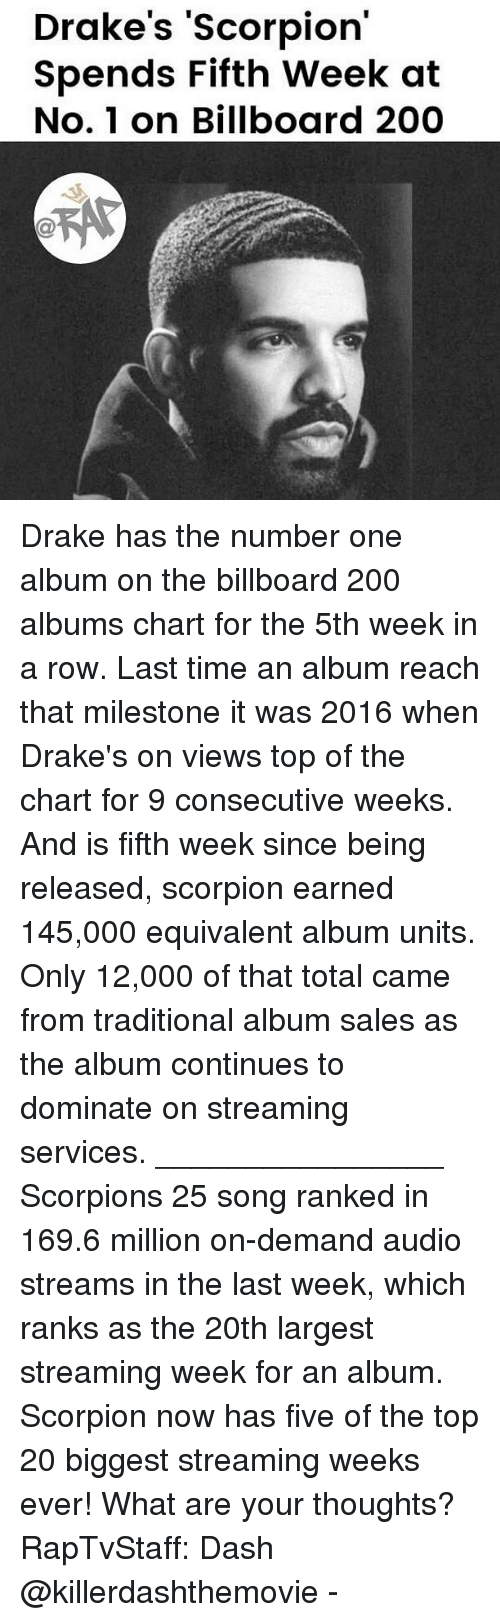 Scorpion: Drake's 'Scorpion  Spends Fifth Week at  No. 1 on Billboard 200 Drake has the number one album on the billboard 200 albums chart for the 5th week in a row. Last time an album reach that milestone it was 2016 when Drake's on views top of the chart for 9 consecutive weeks. And is fifth week since being released, scorpion earned 145,000 equivalent album units. Only 12,000 of that total came from traditional album sales as the album continues to dominate on streaming services. ________________ Scorpions 25 song ranked in 169.6 million on-demand audio streams in the last week, which ranks as the 20th largest streaming week for an album. Scorpion now has five of the top 20 biggest streaming weeks ever! What are your thoughts? RapTvStaff: Dash @killerdashthemovie -